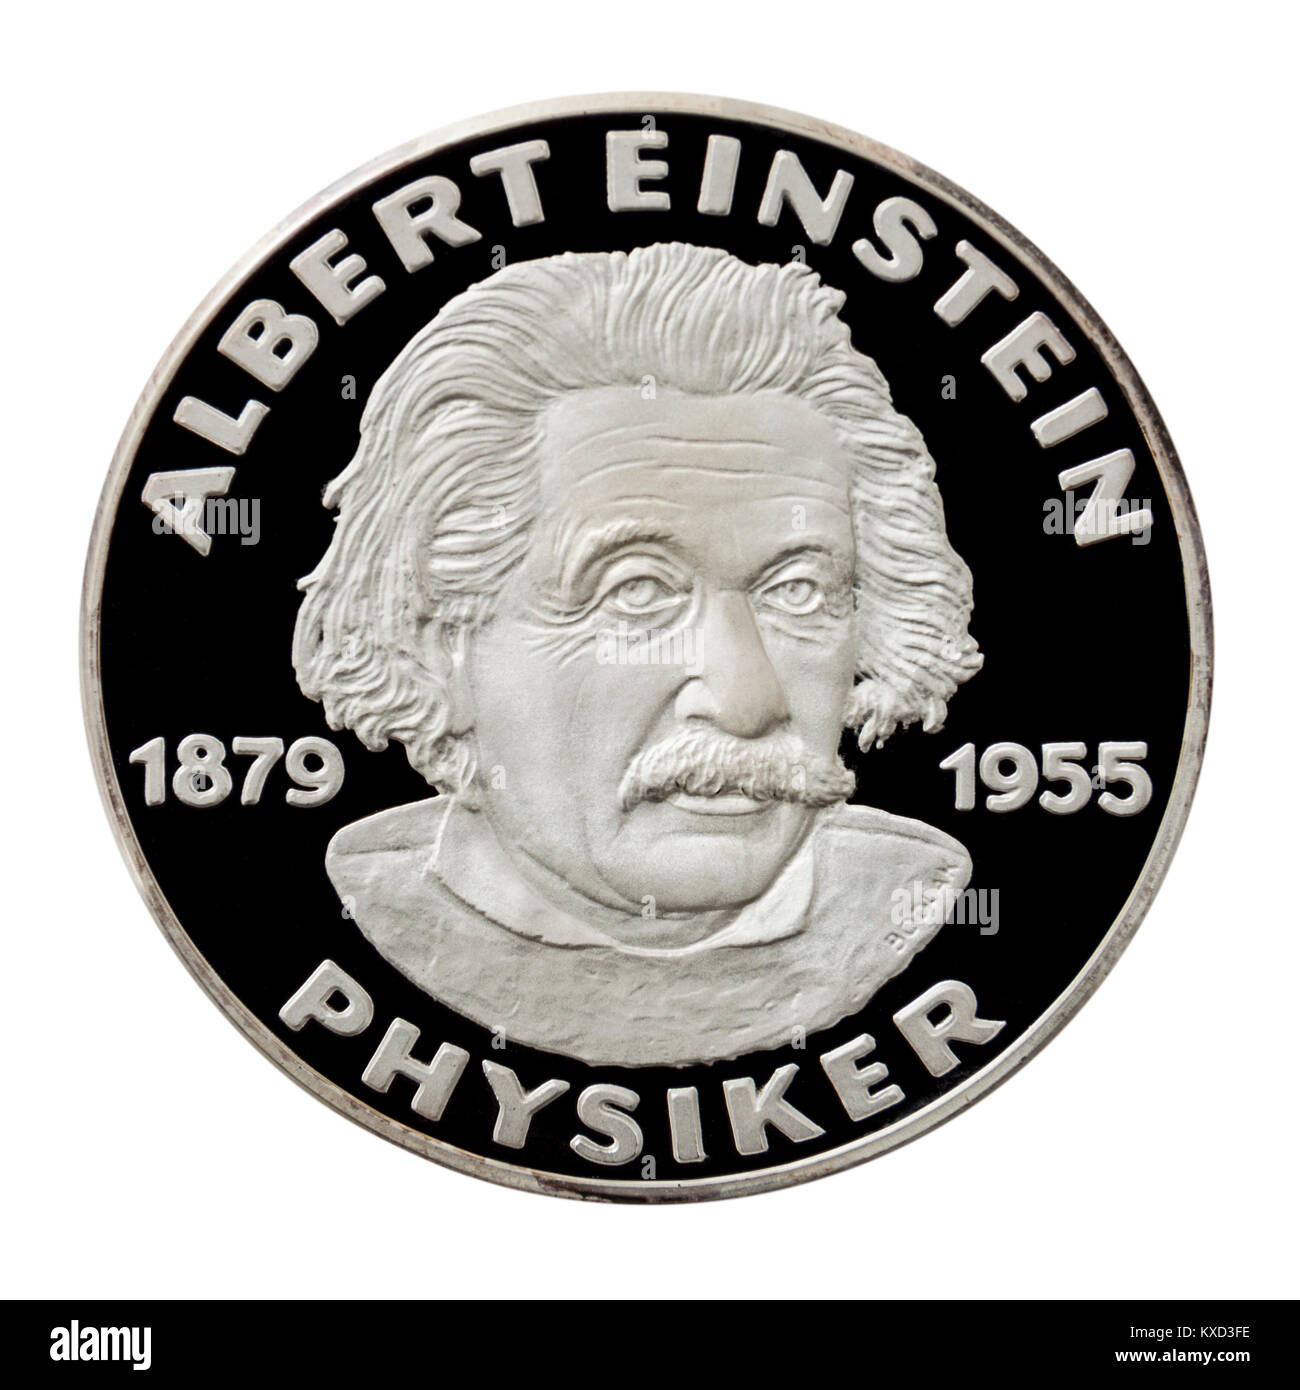 99.9% Proof Silver Medallion featuring Albert Einstein (1879-1955), the famous German physicist. - Stock Image